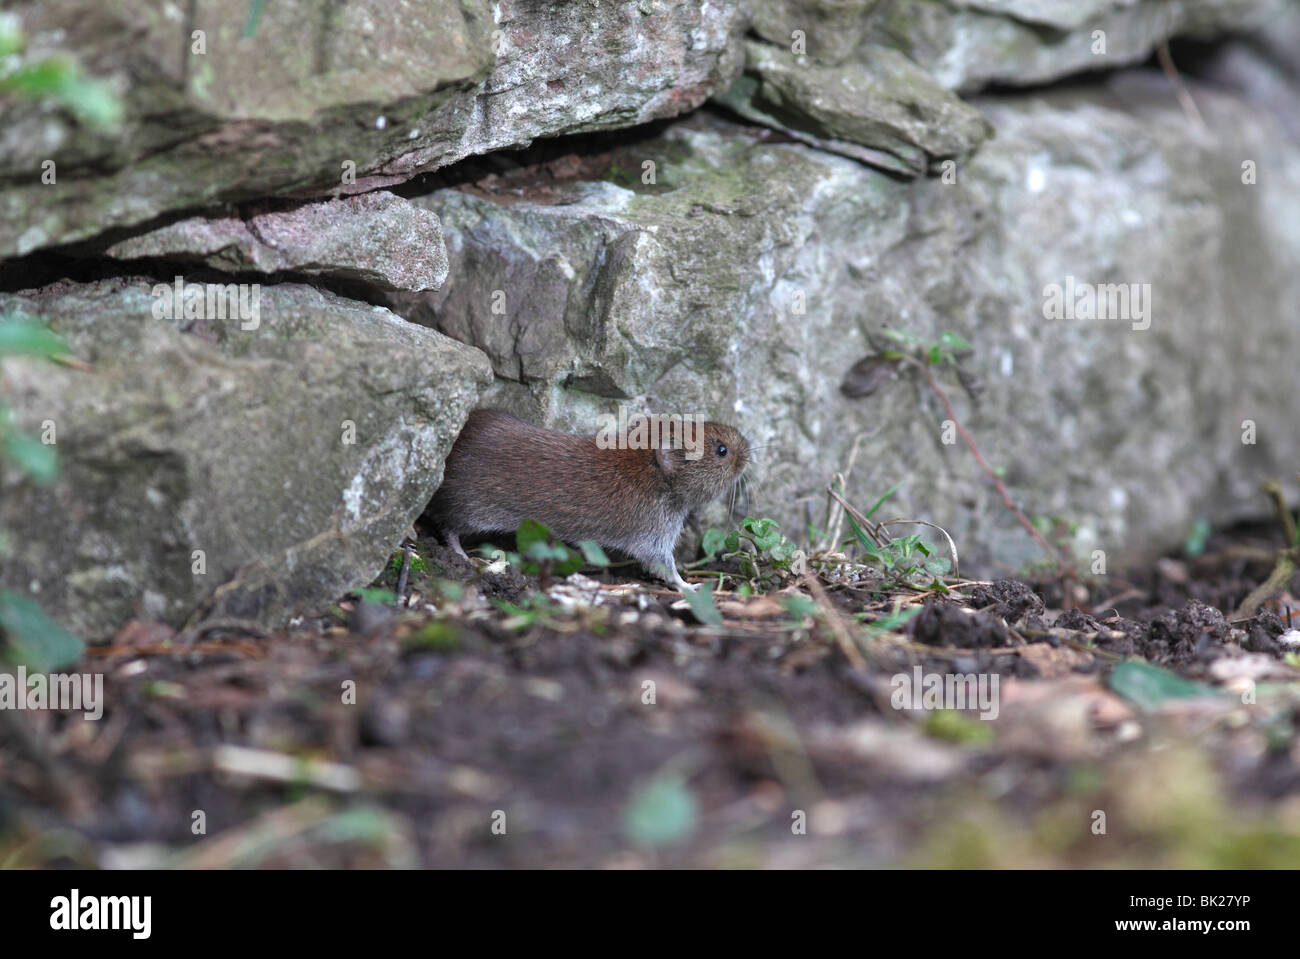 Bank vole (Clethrionomys glareolus) coming out of hole in stone wall - Stock Image